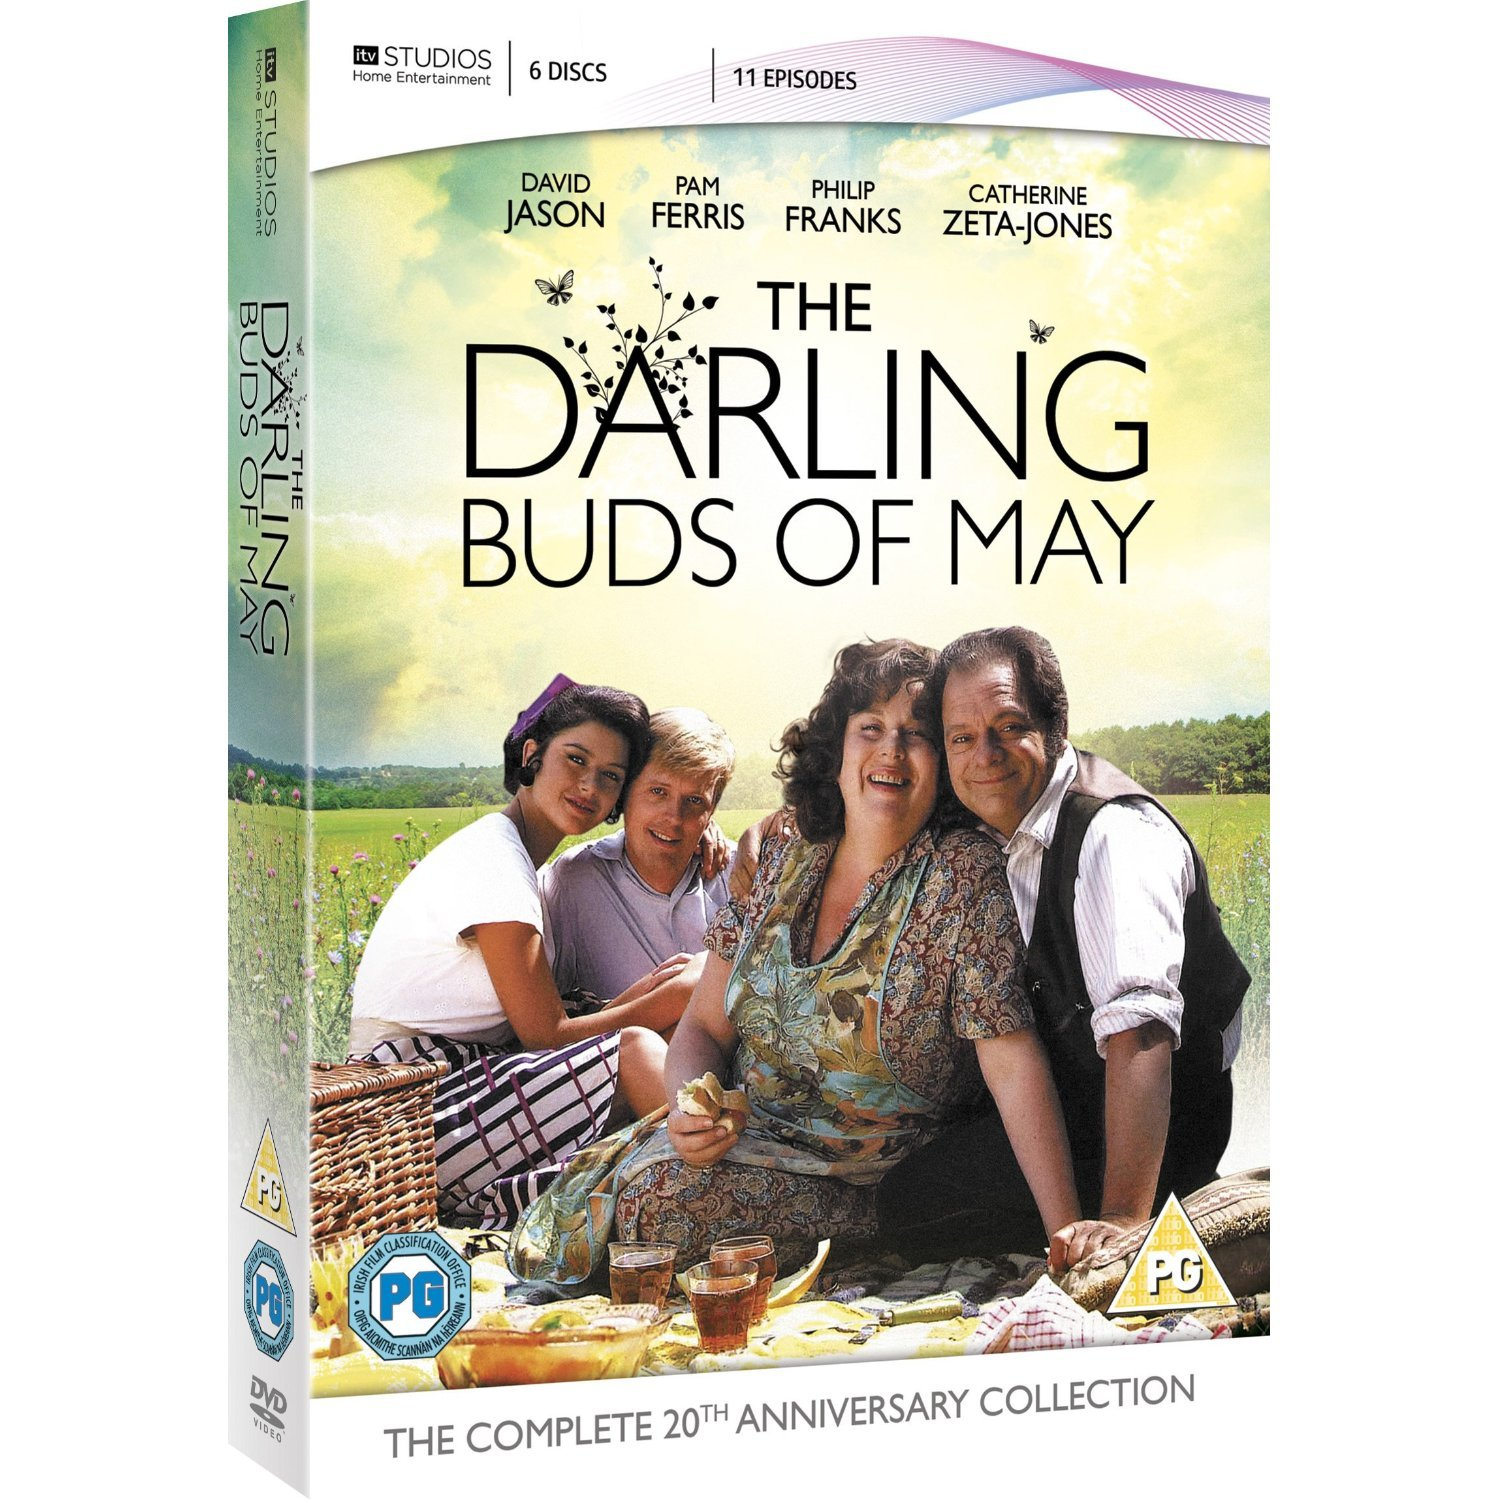 dvd-cover 1.5.1.7